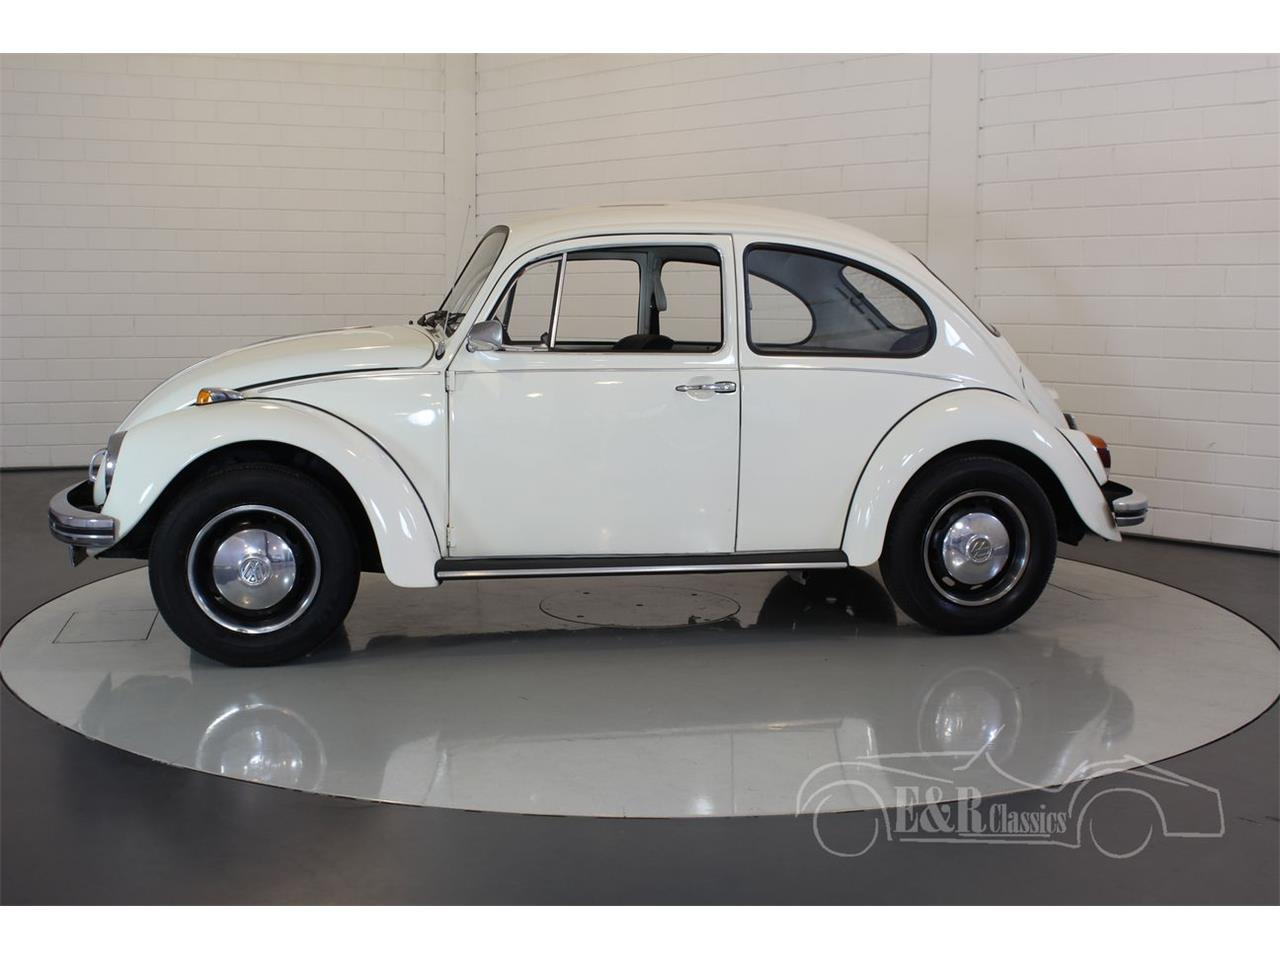 Large Picture of Classic '73 Volkswagen Beetle located in Noord-Brabant - $13,500.00 - QJ2U